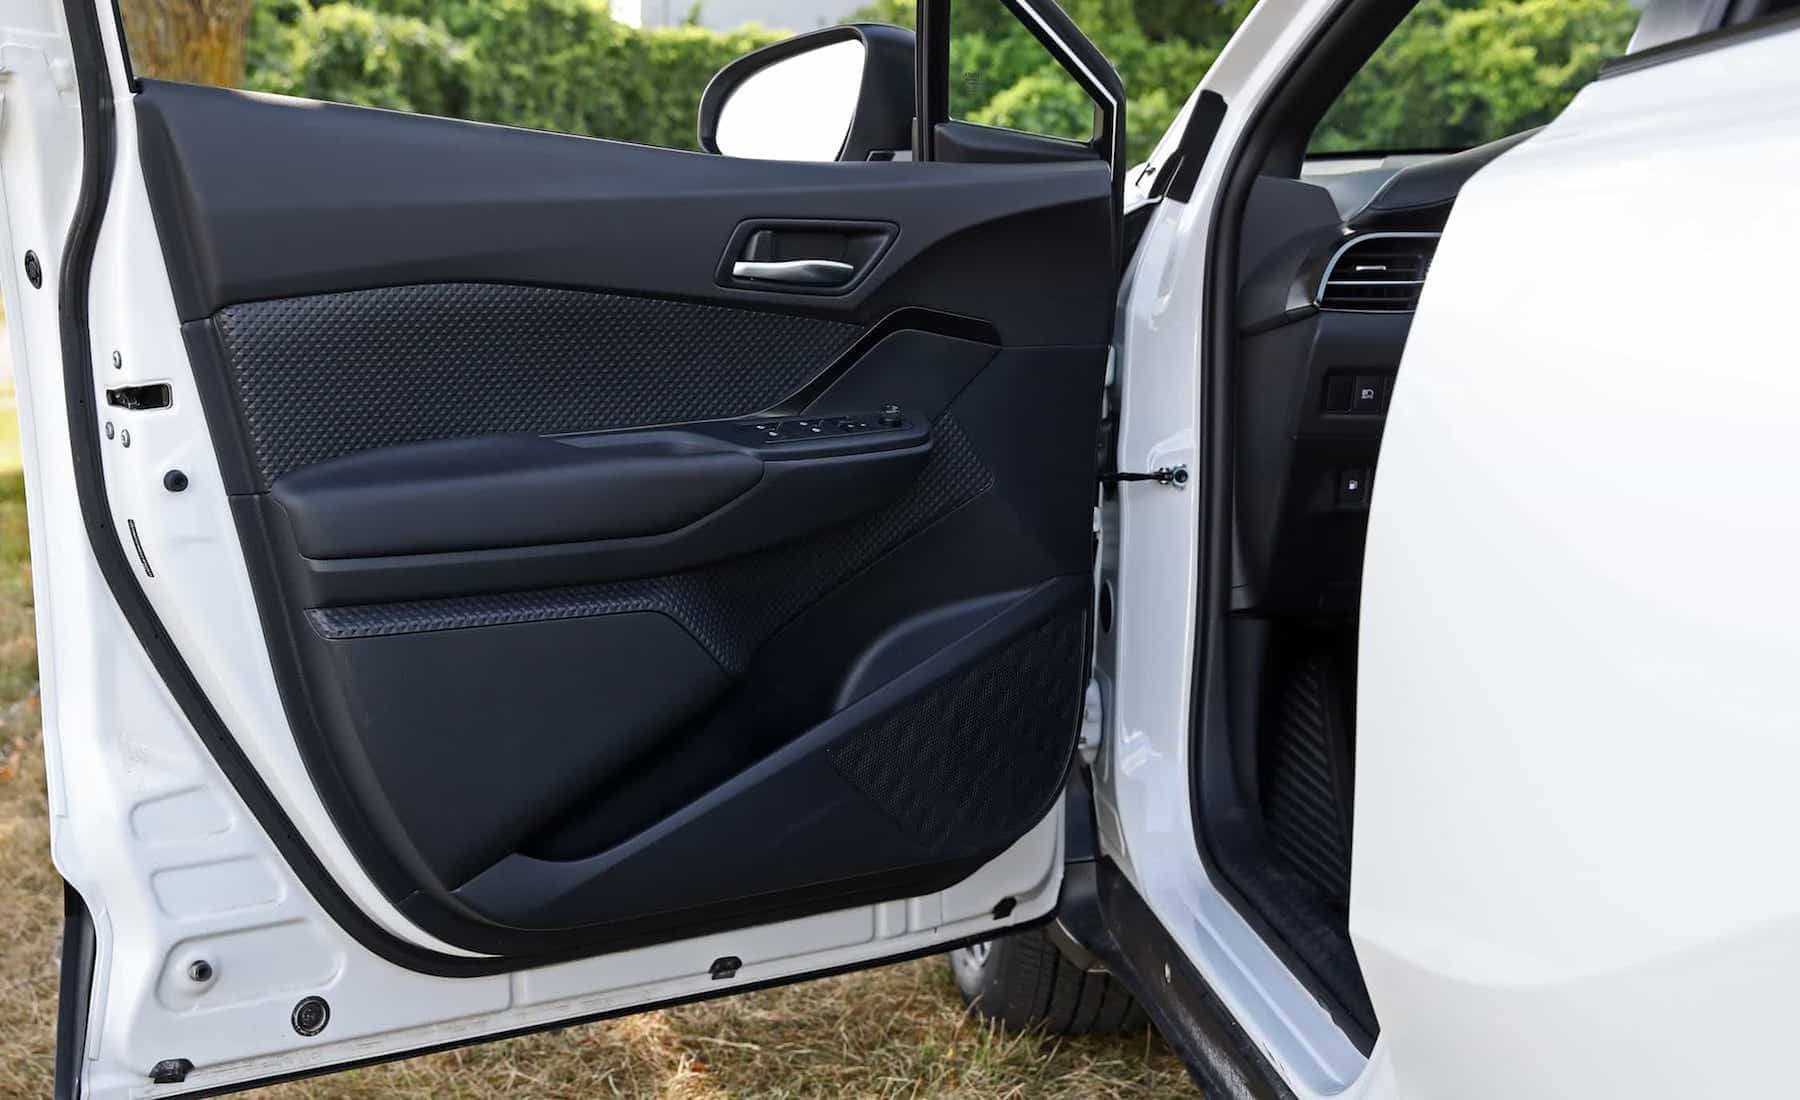 2018 Toyota C HR XLE Premium Interior View Door Trim Front (Photo 25 of 52)